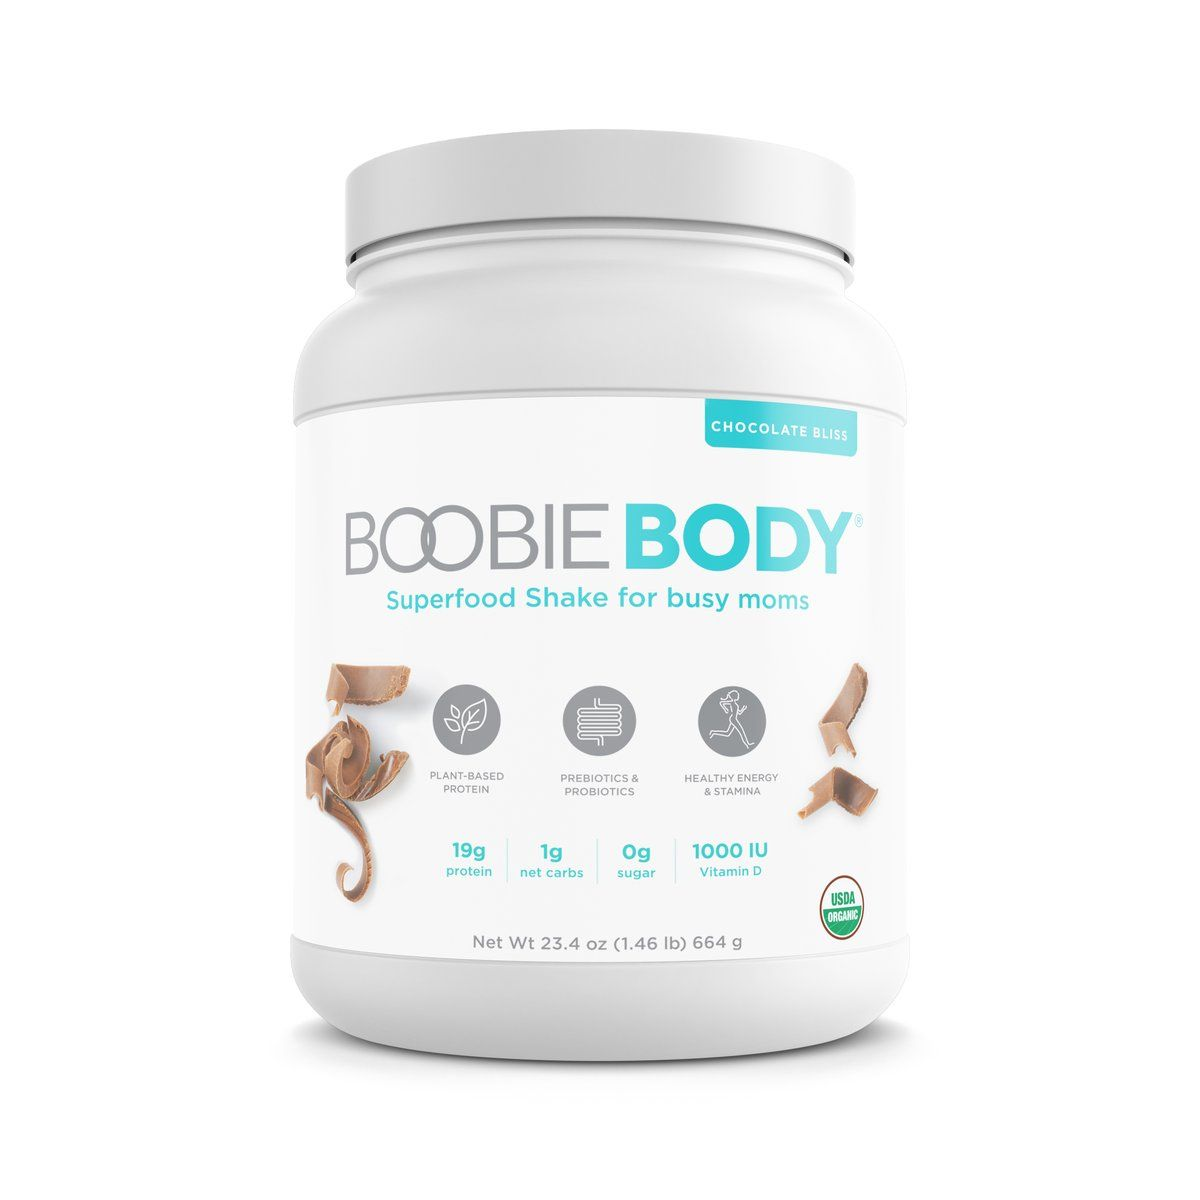 Boobie Body Chocolate Bliss With Images Body Protein